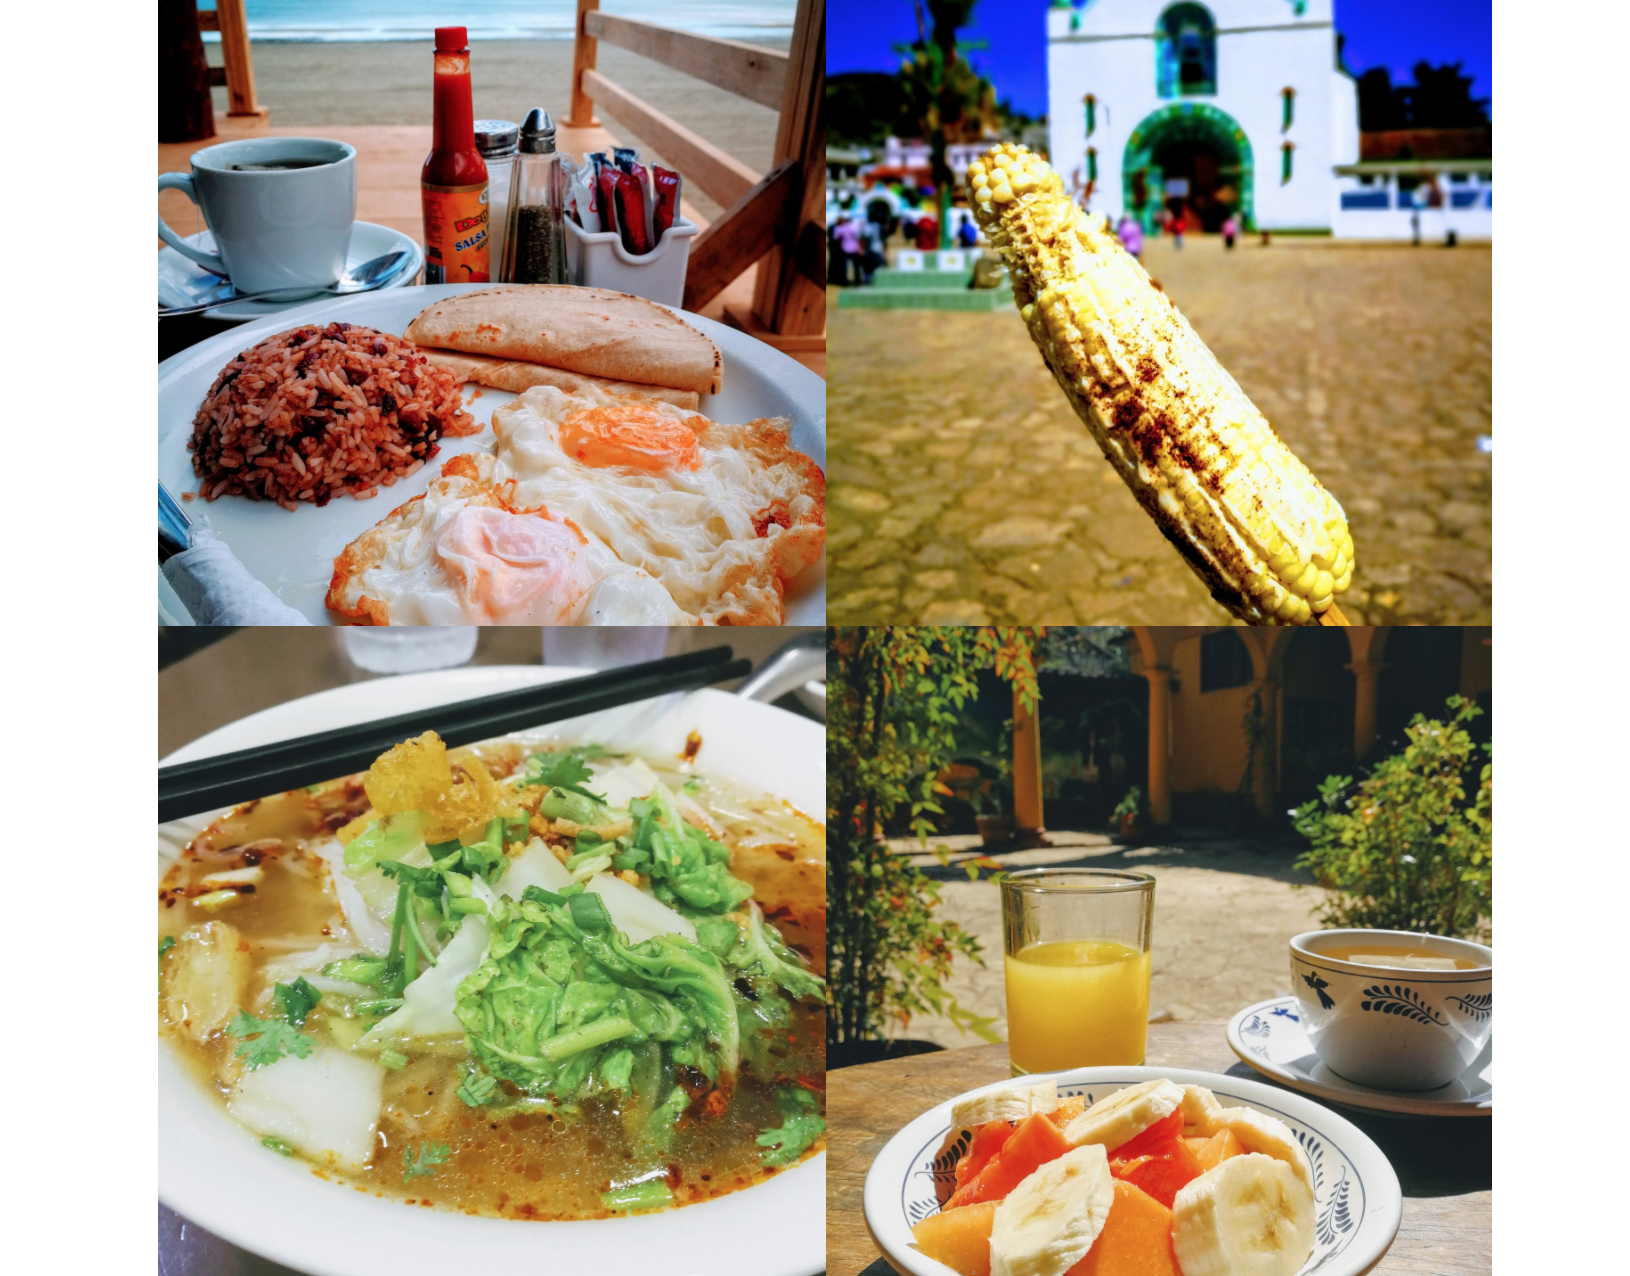 Traveling the world vegetarian or vegan isn't that hard.  I always travel vegetarian (or full vegan if I am in a place with lots of plant-based options) and I have eaten like a queen on my world travels... just look at these delicious dishes!